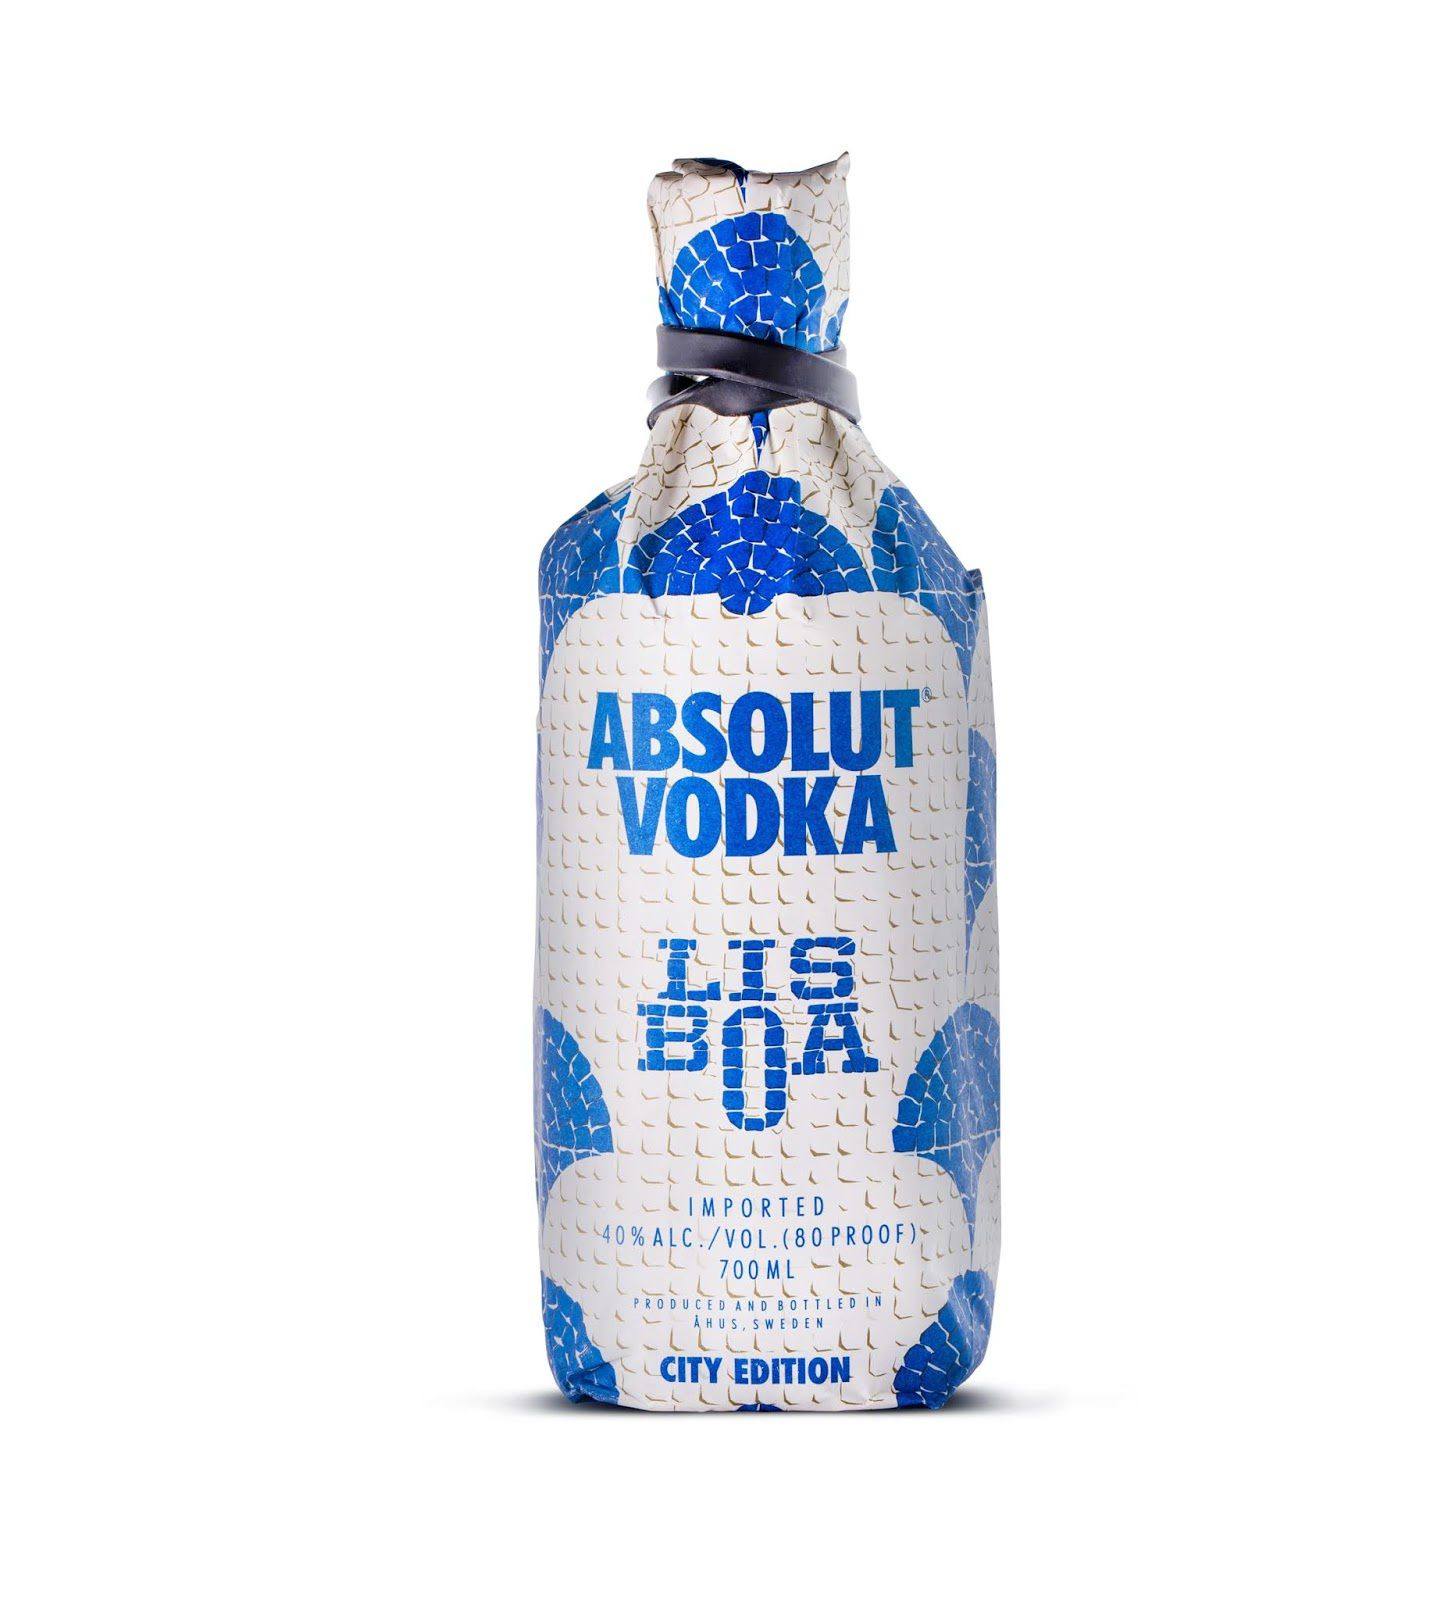 "Absolut Vodka : ""Lisboa"" (bouteille collector imaginée dans le cadre ""The City Edition series"") I Design : VOLTA Brand Shaping Studio, Porto, Portugal (juillet 2019)"